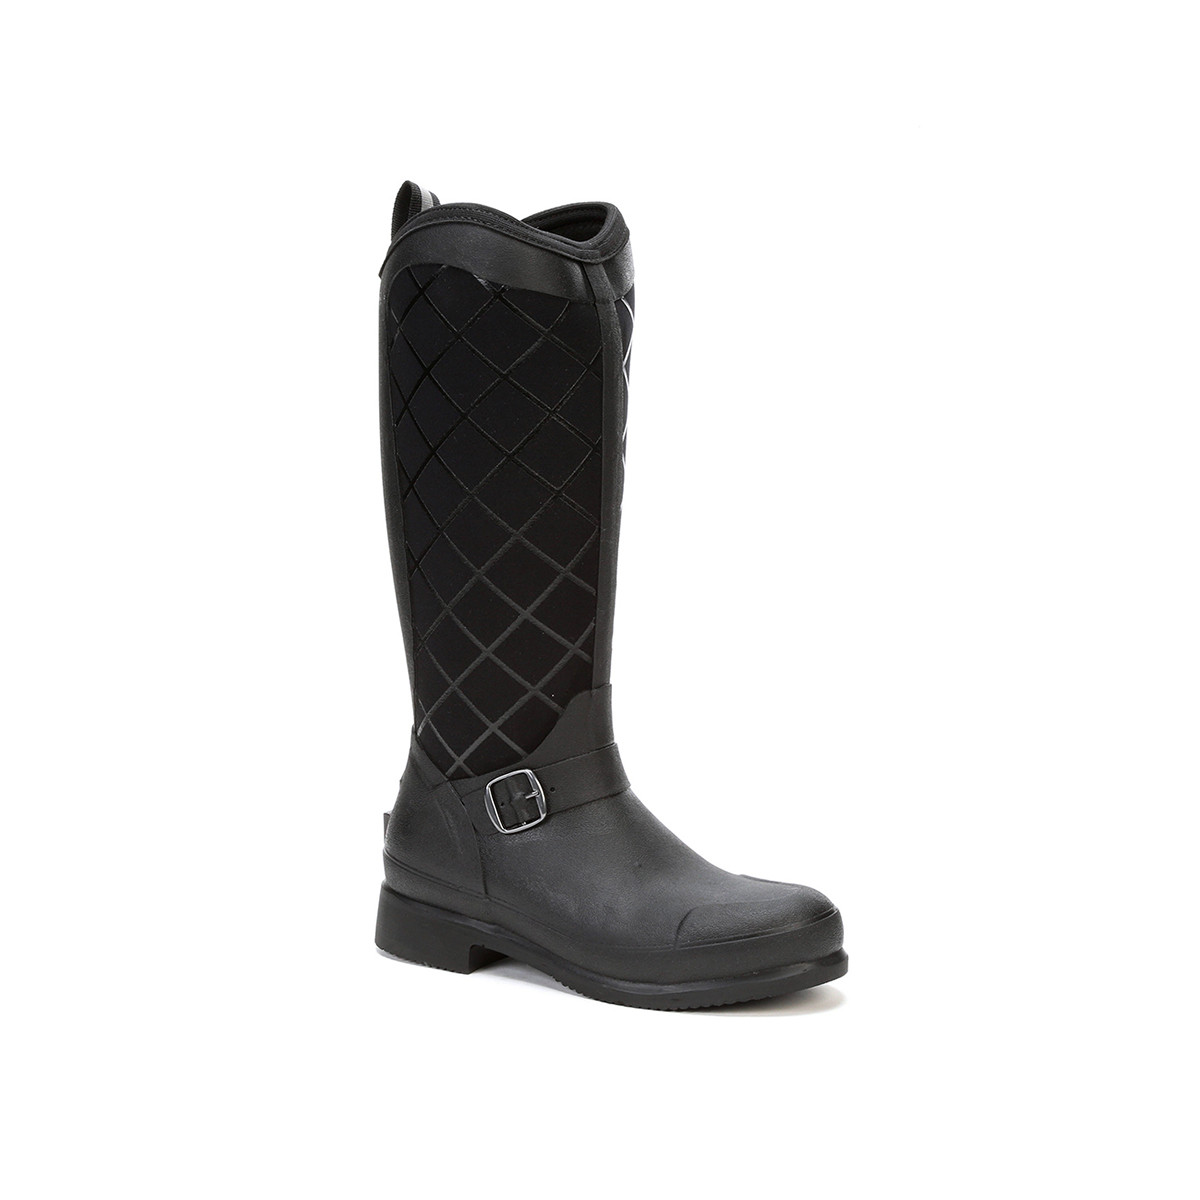 Insulated Muck Boots nEz6E3KL